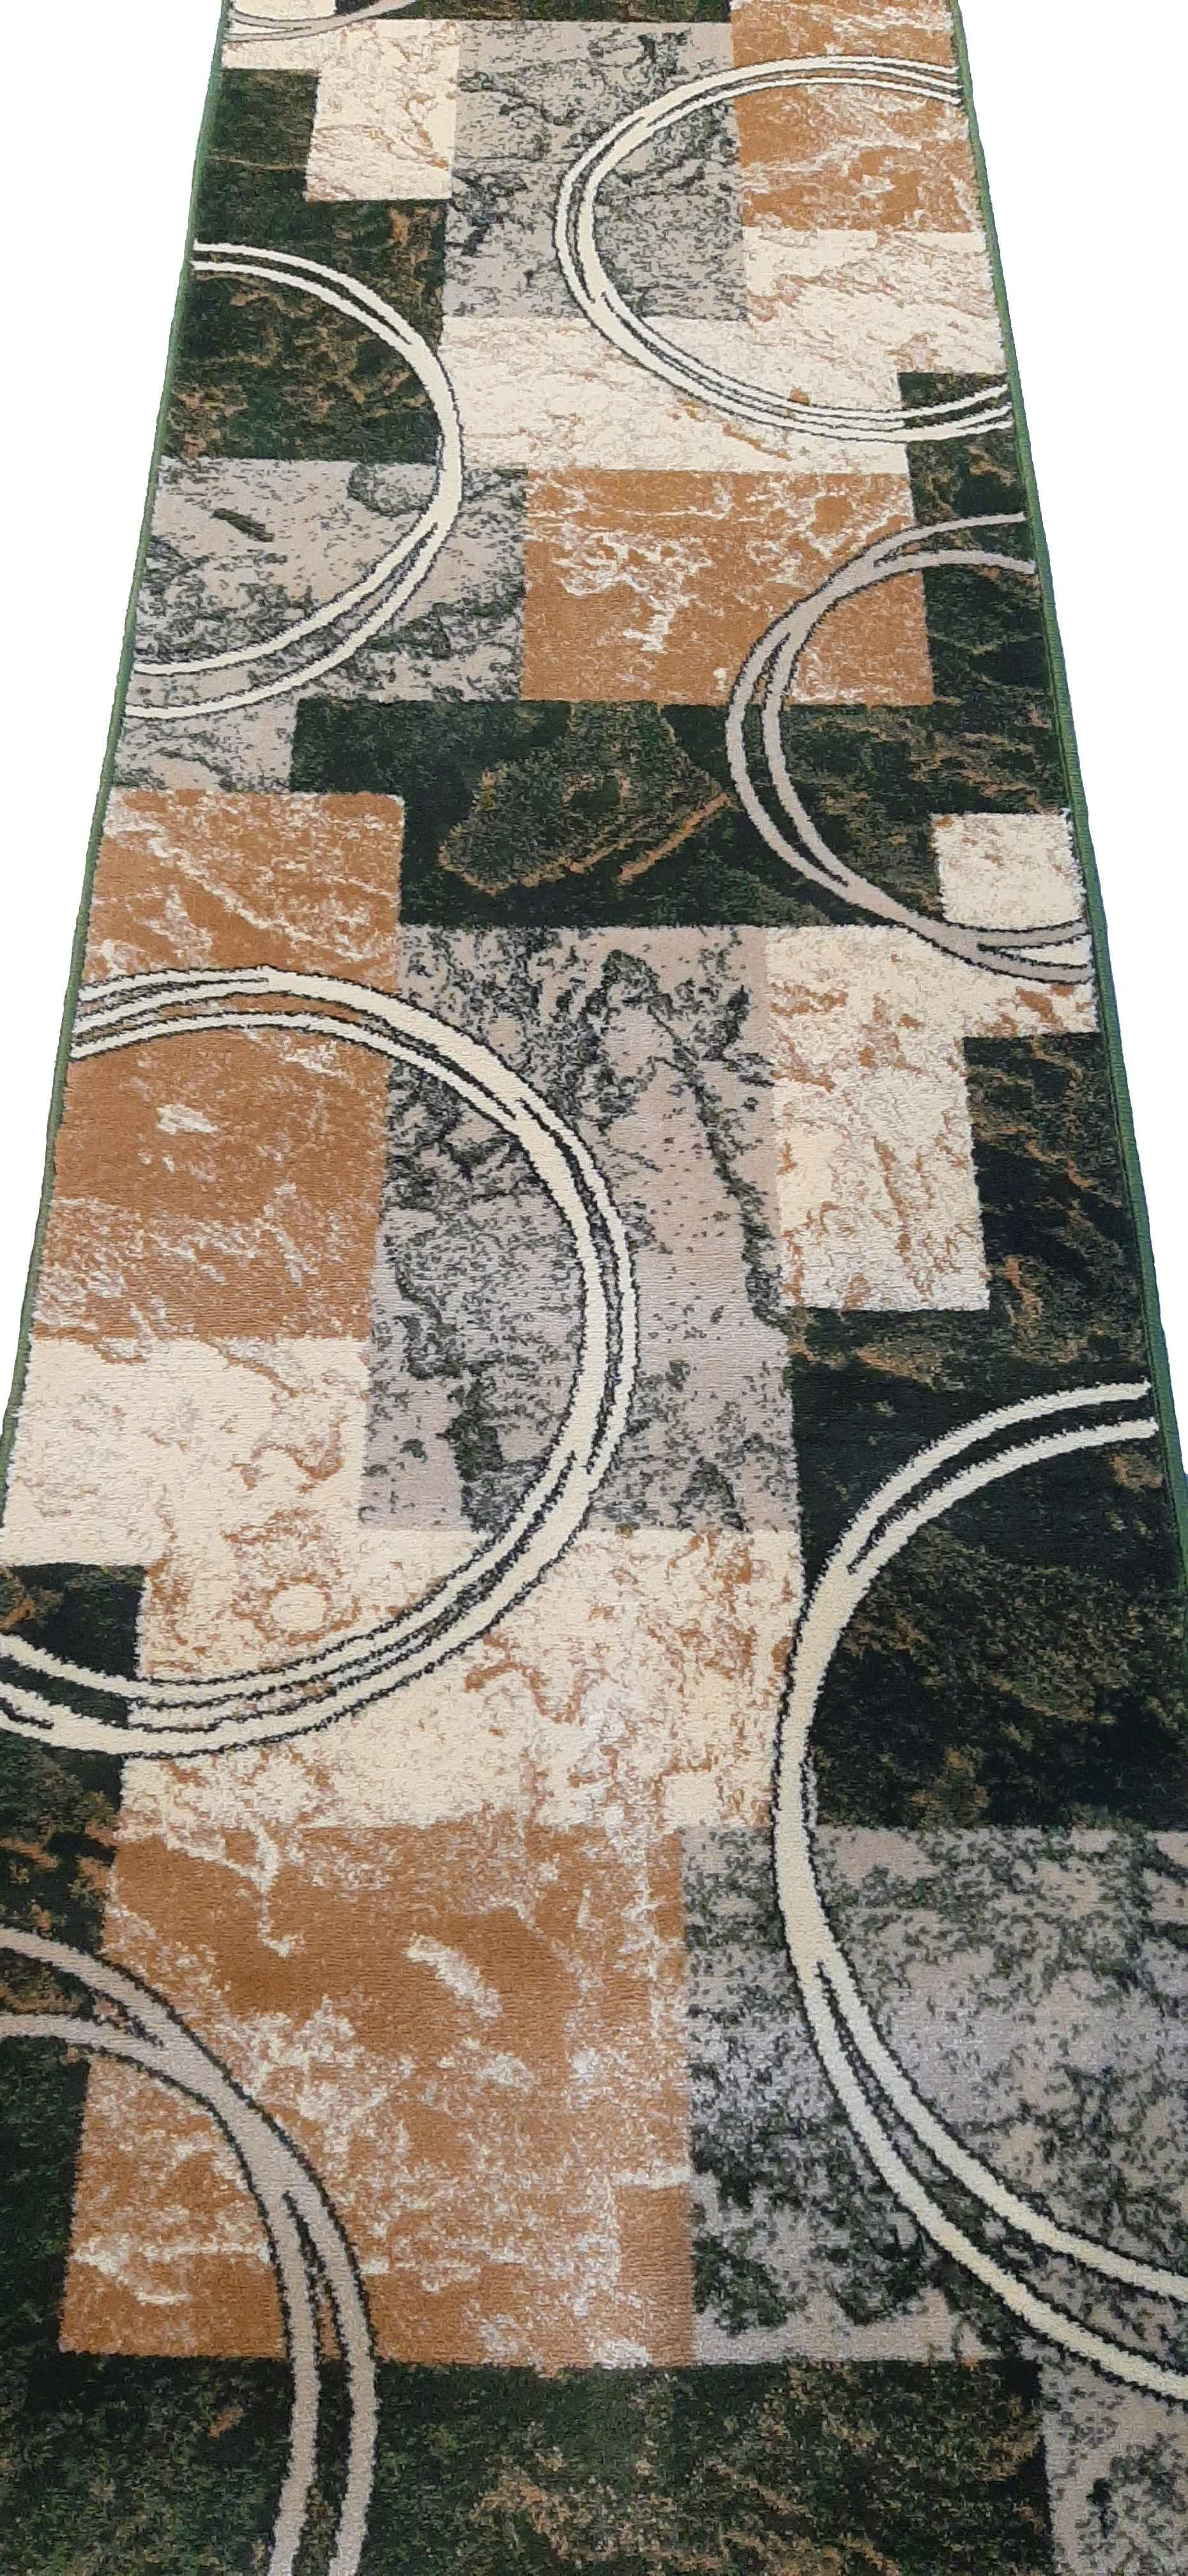 Traversa Lotos 15001, Verde, 100x500 cm, 1800 gr/mp 1